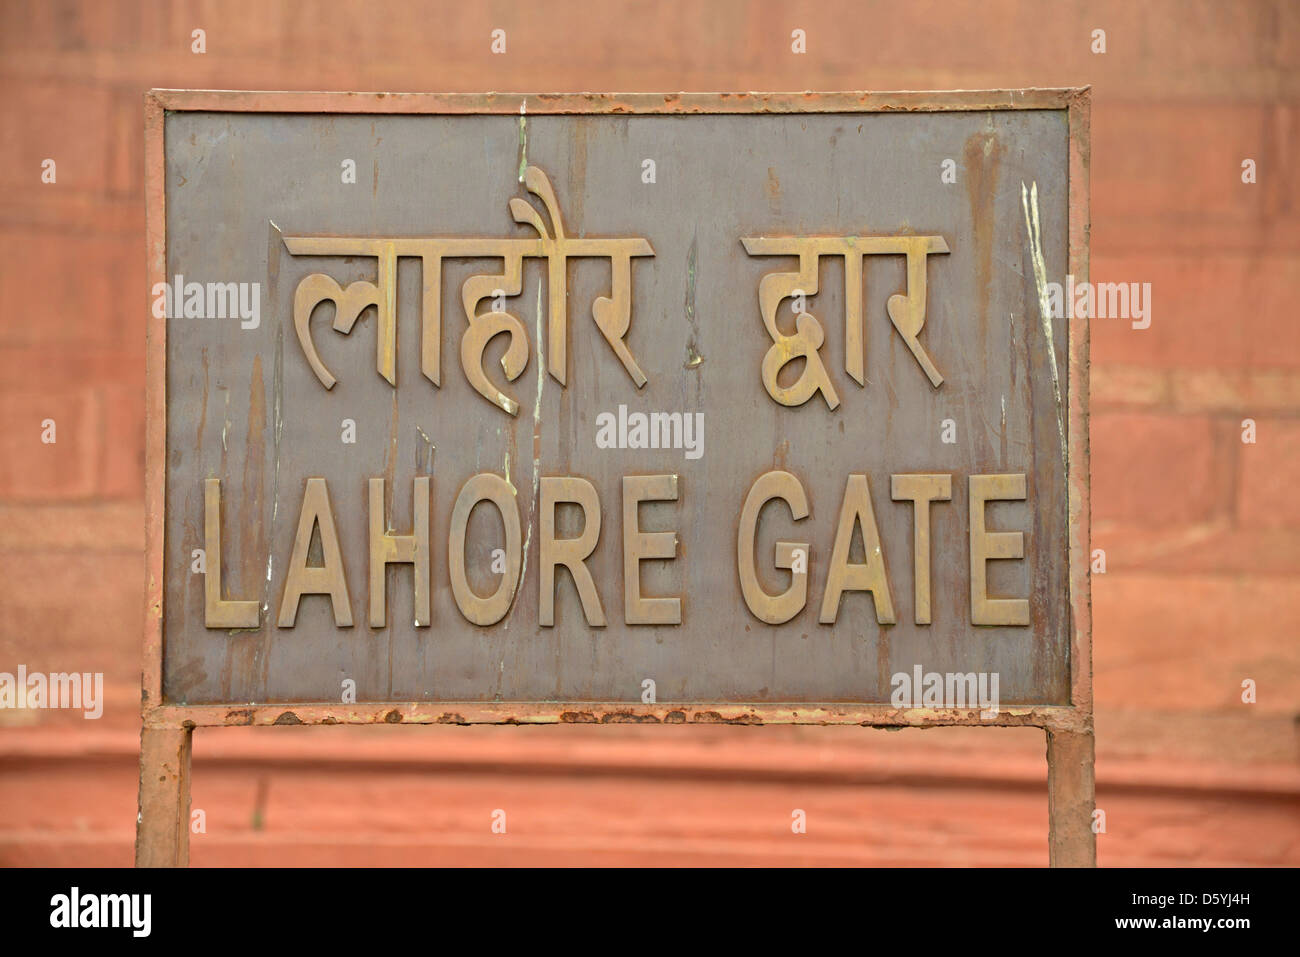 A plaque of the Lahore Gate at the Red Fort in Old Delhi,India - Stock Image